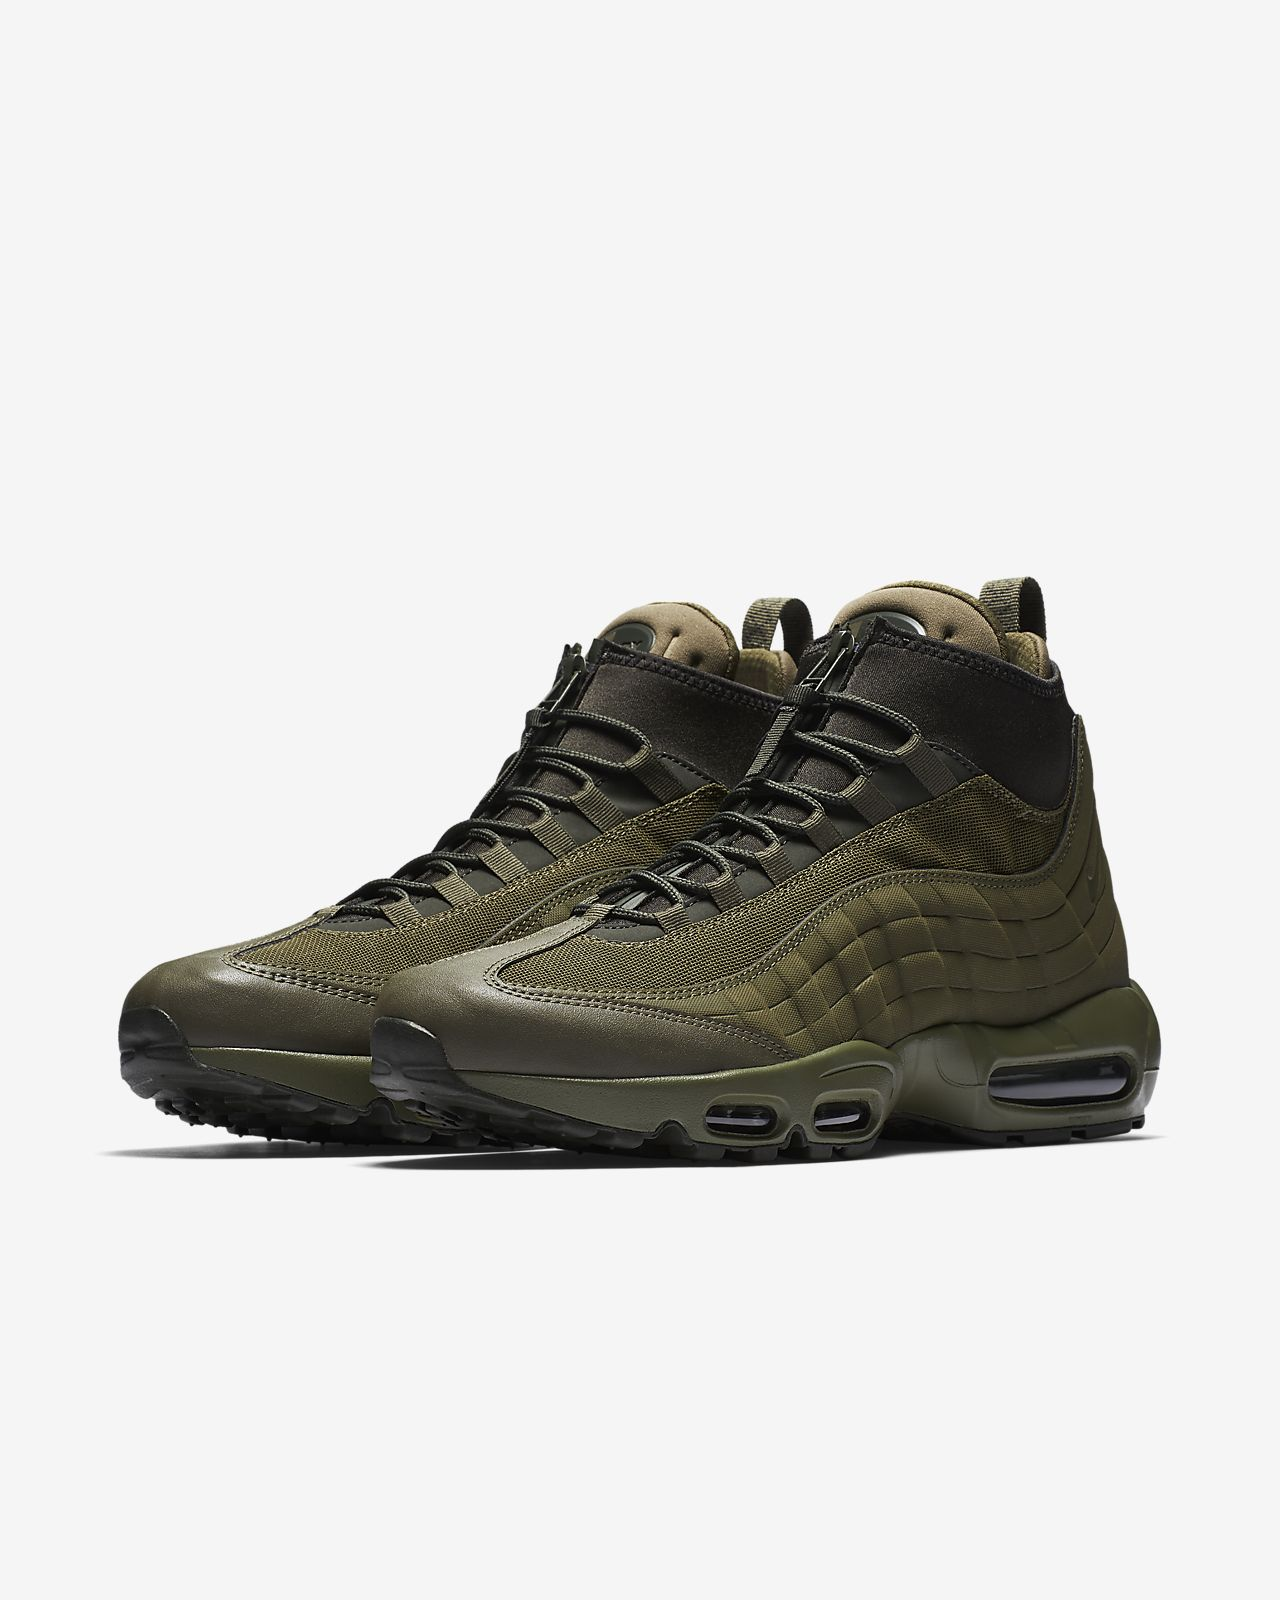 save off 87eeb a6879 Nike Air Max 95 Sneakerboot : Nike   Discounted Shoes & Trainers ...